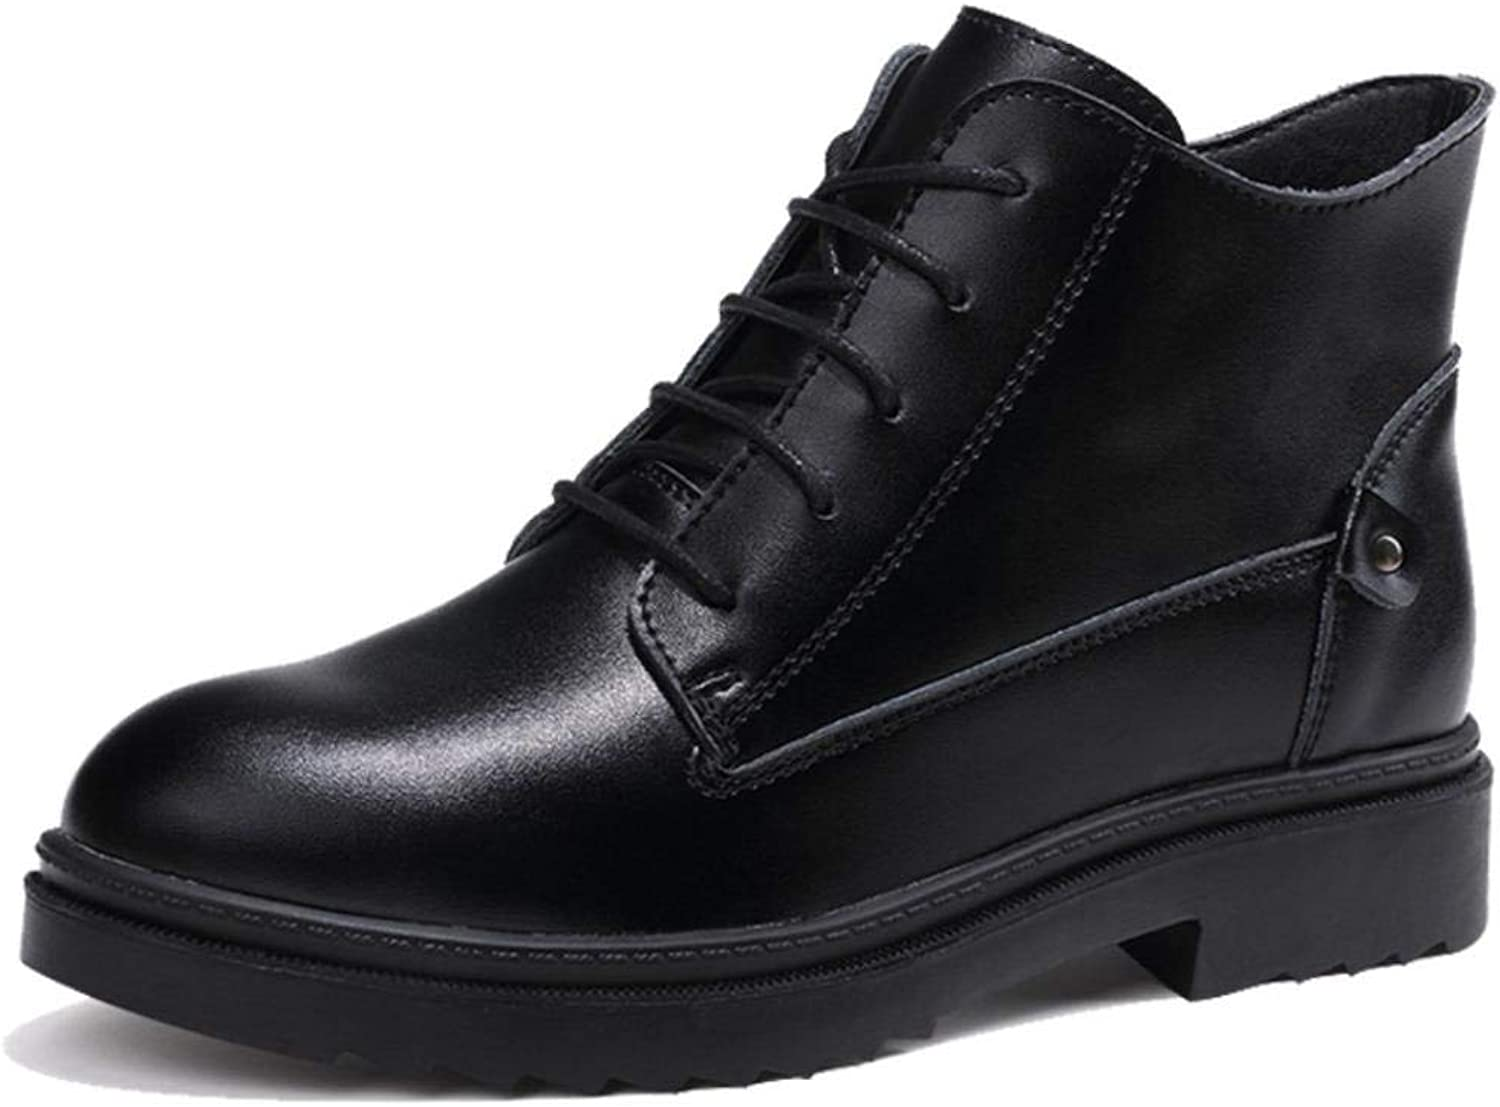 TRULAND Women's Leather Lace Up Ankle Boot Bootie Warm Fur Lining